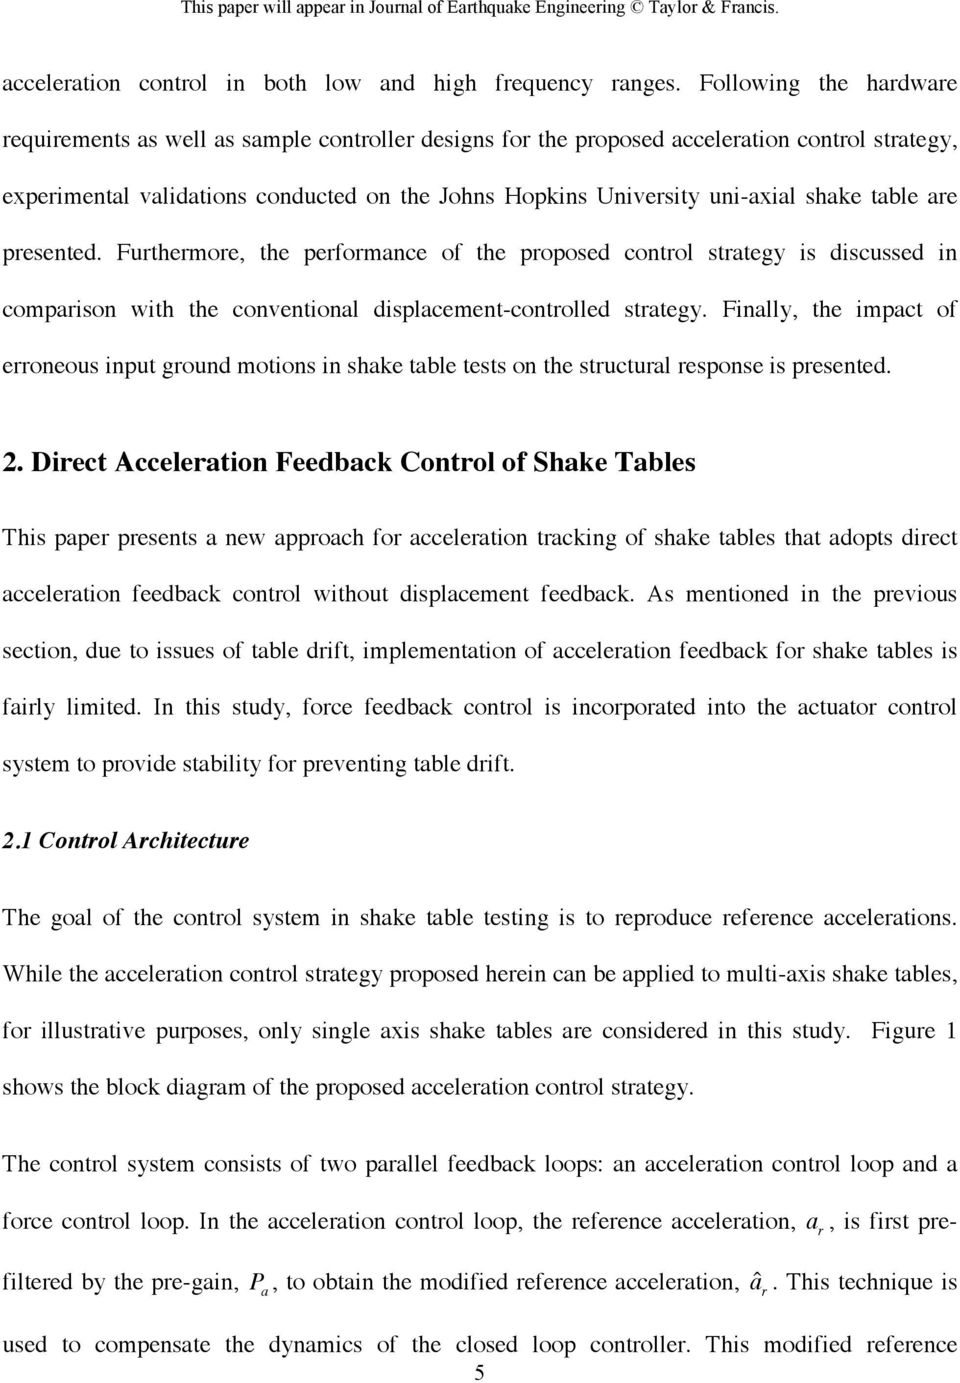 shake table are presented. Furthermore, the performance of the proposed control strategy is discussed in comparison with the conventional displacement-controlled strategy.